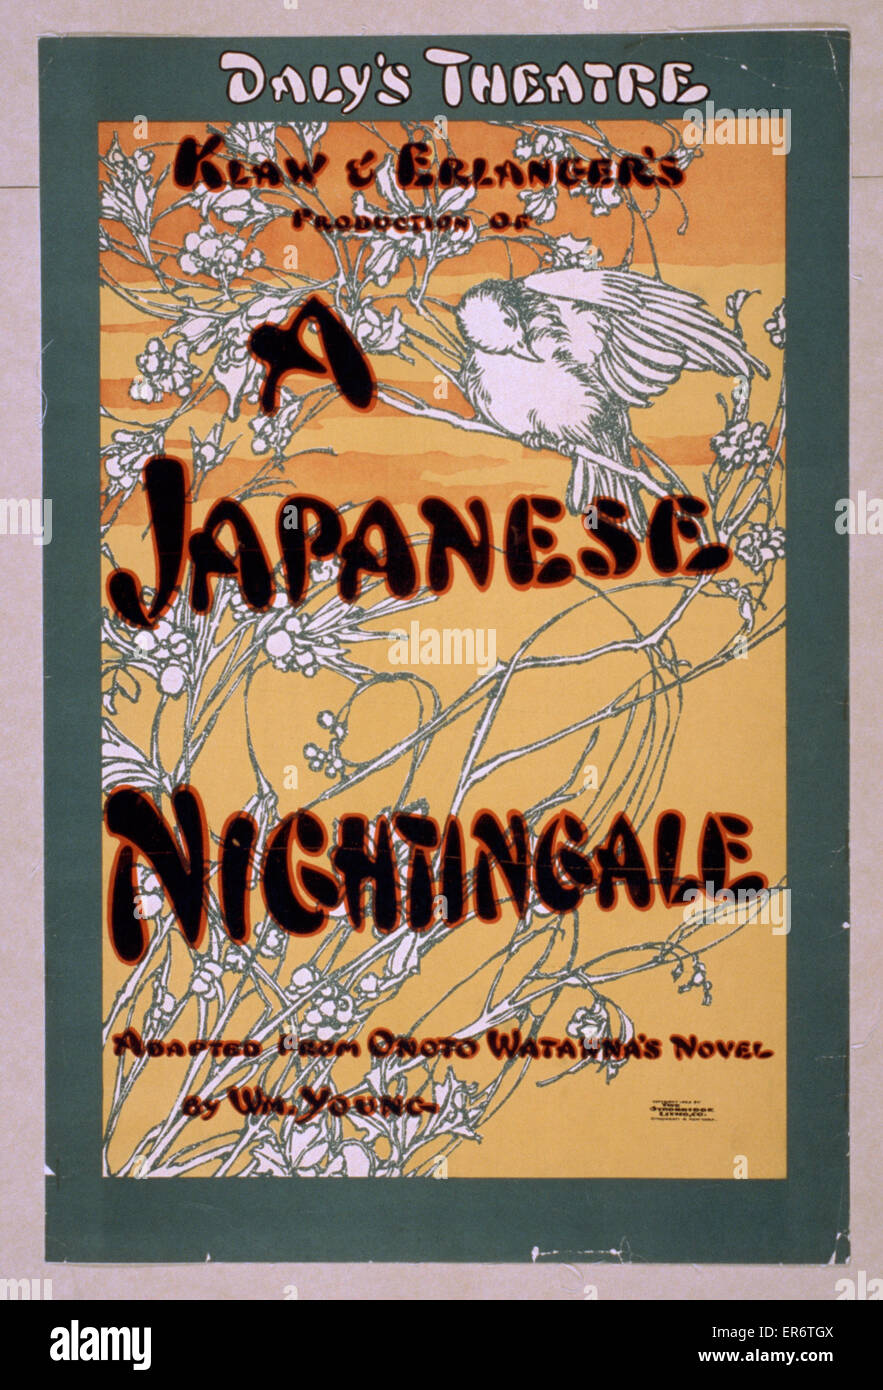 Klaw & Erlanger's production of A Japanese nightingale adapted from Onoto Watanna's novel by Wm. - Stock Image